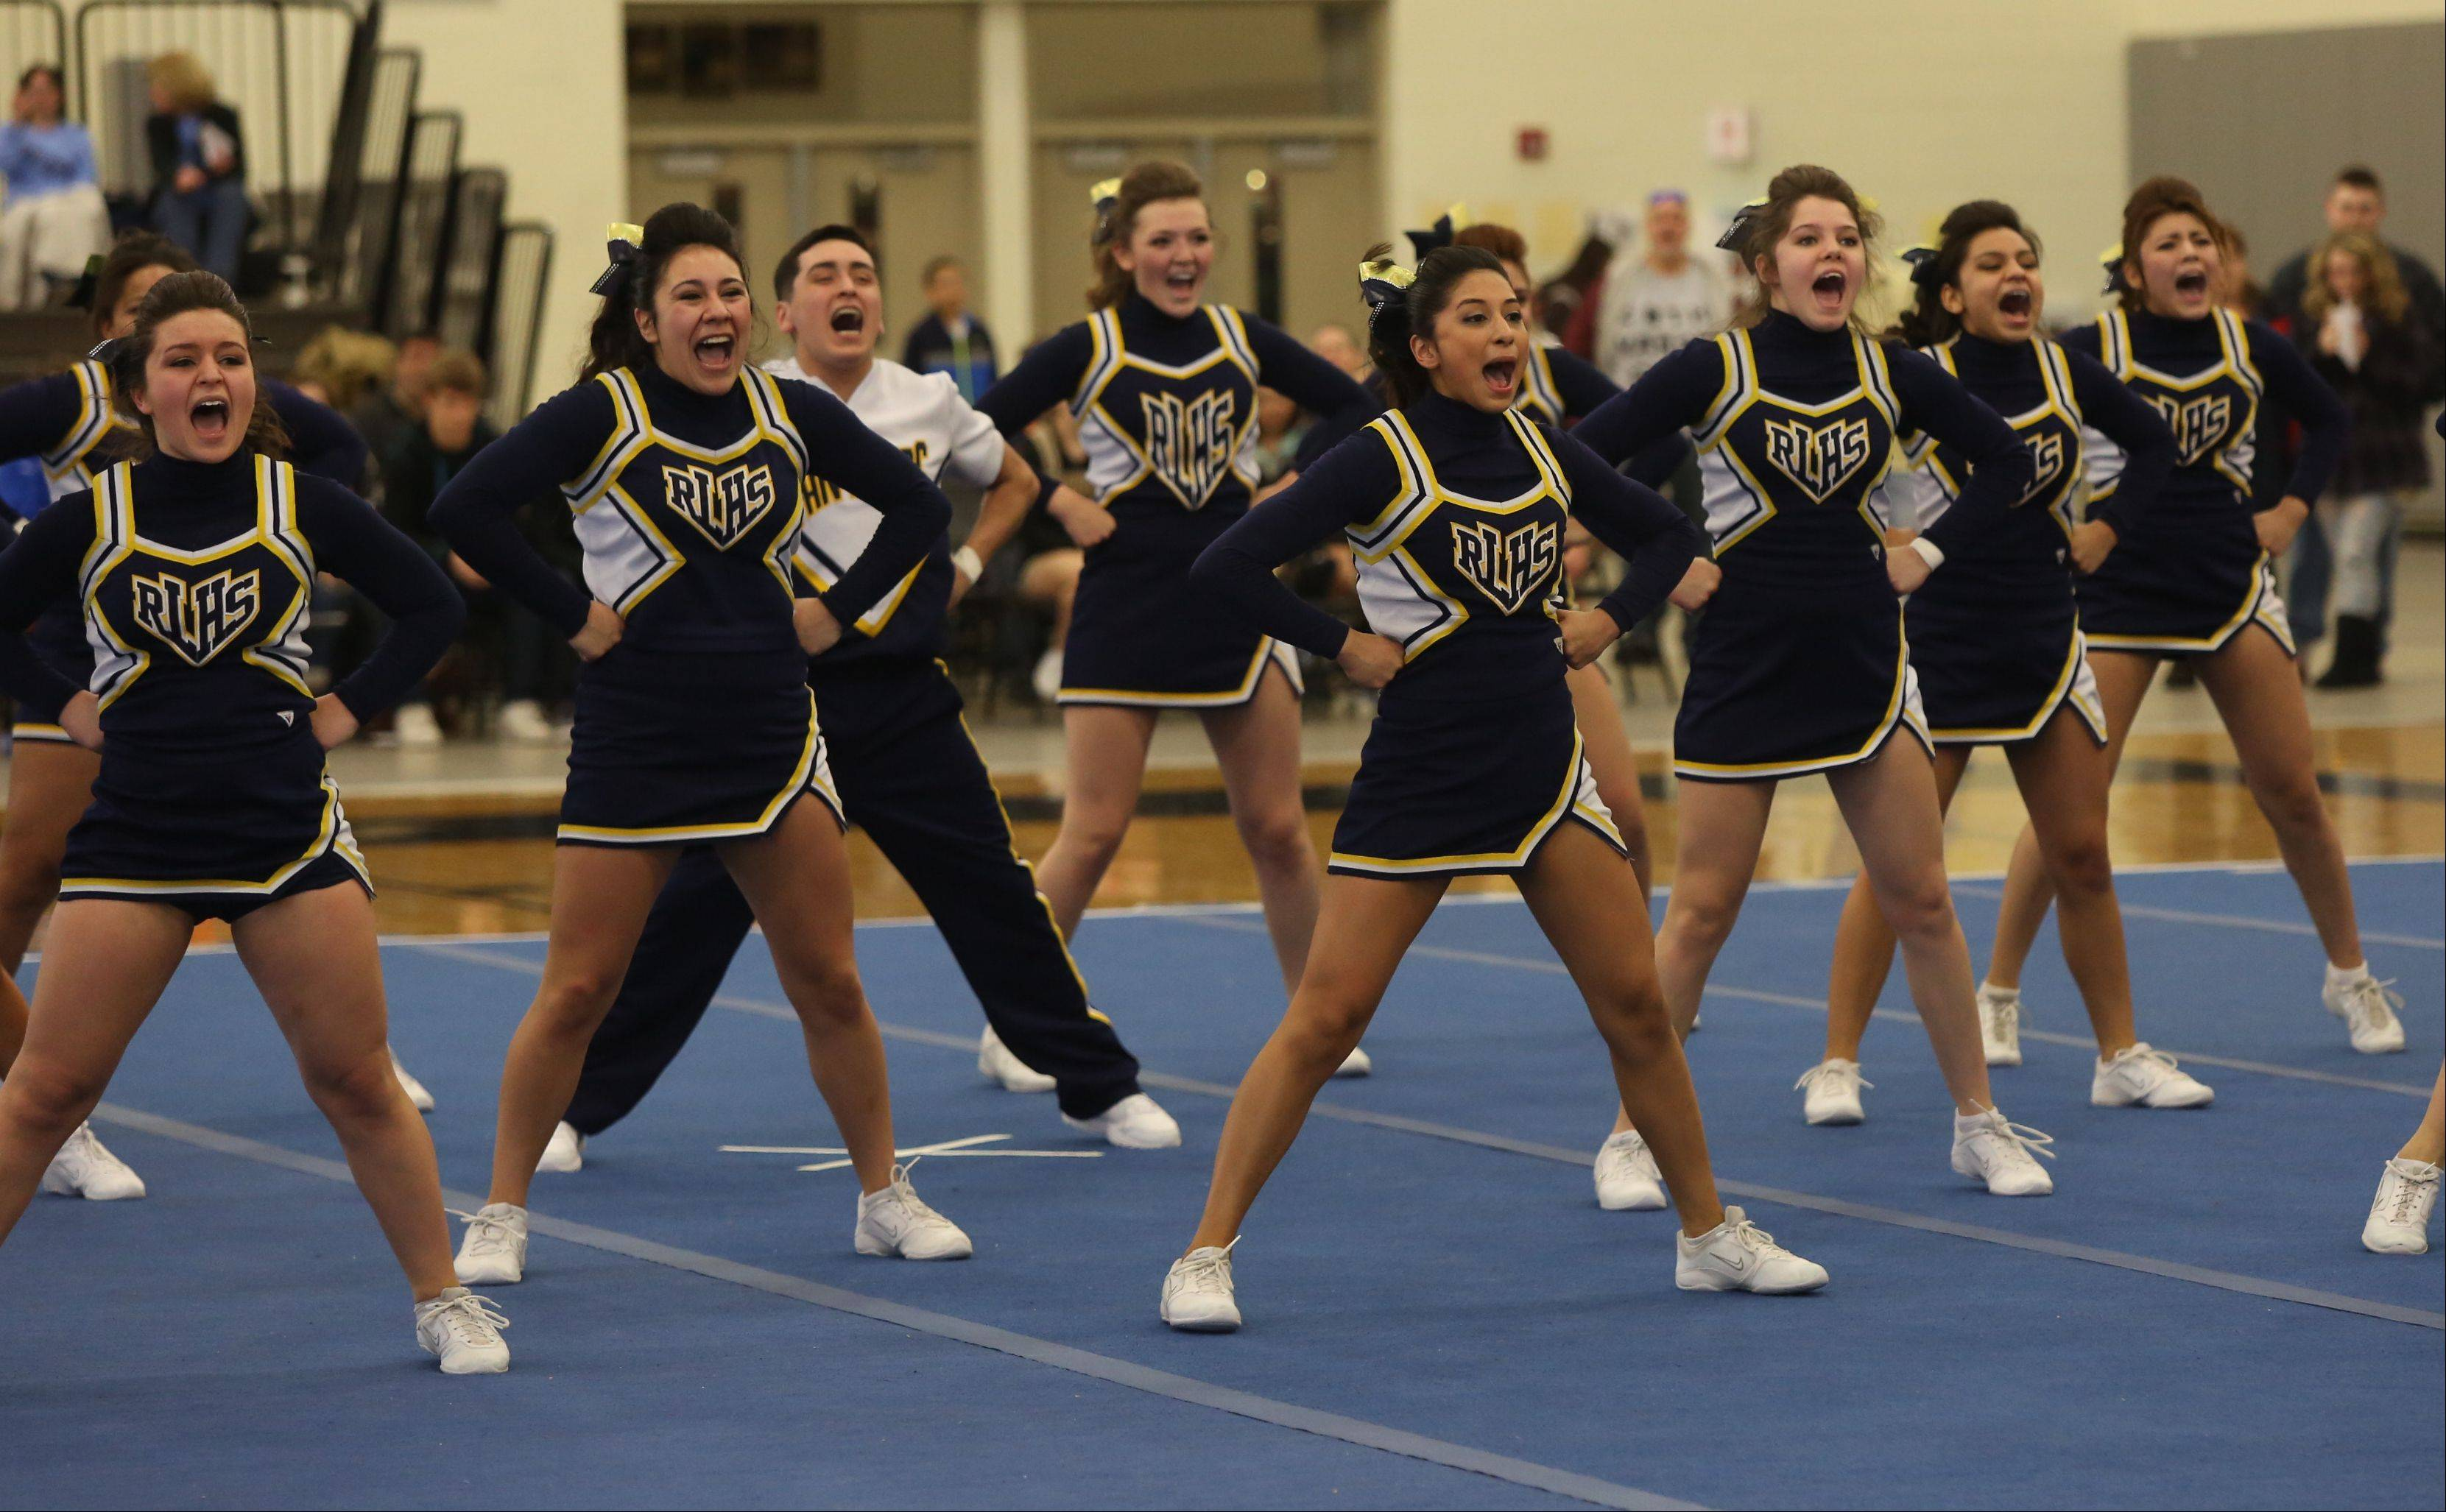 Round Lake High School competes in the Large Team category during the IHSA Cheerleading Sectional Sunday hosted by Grayslake North High School.